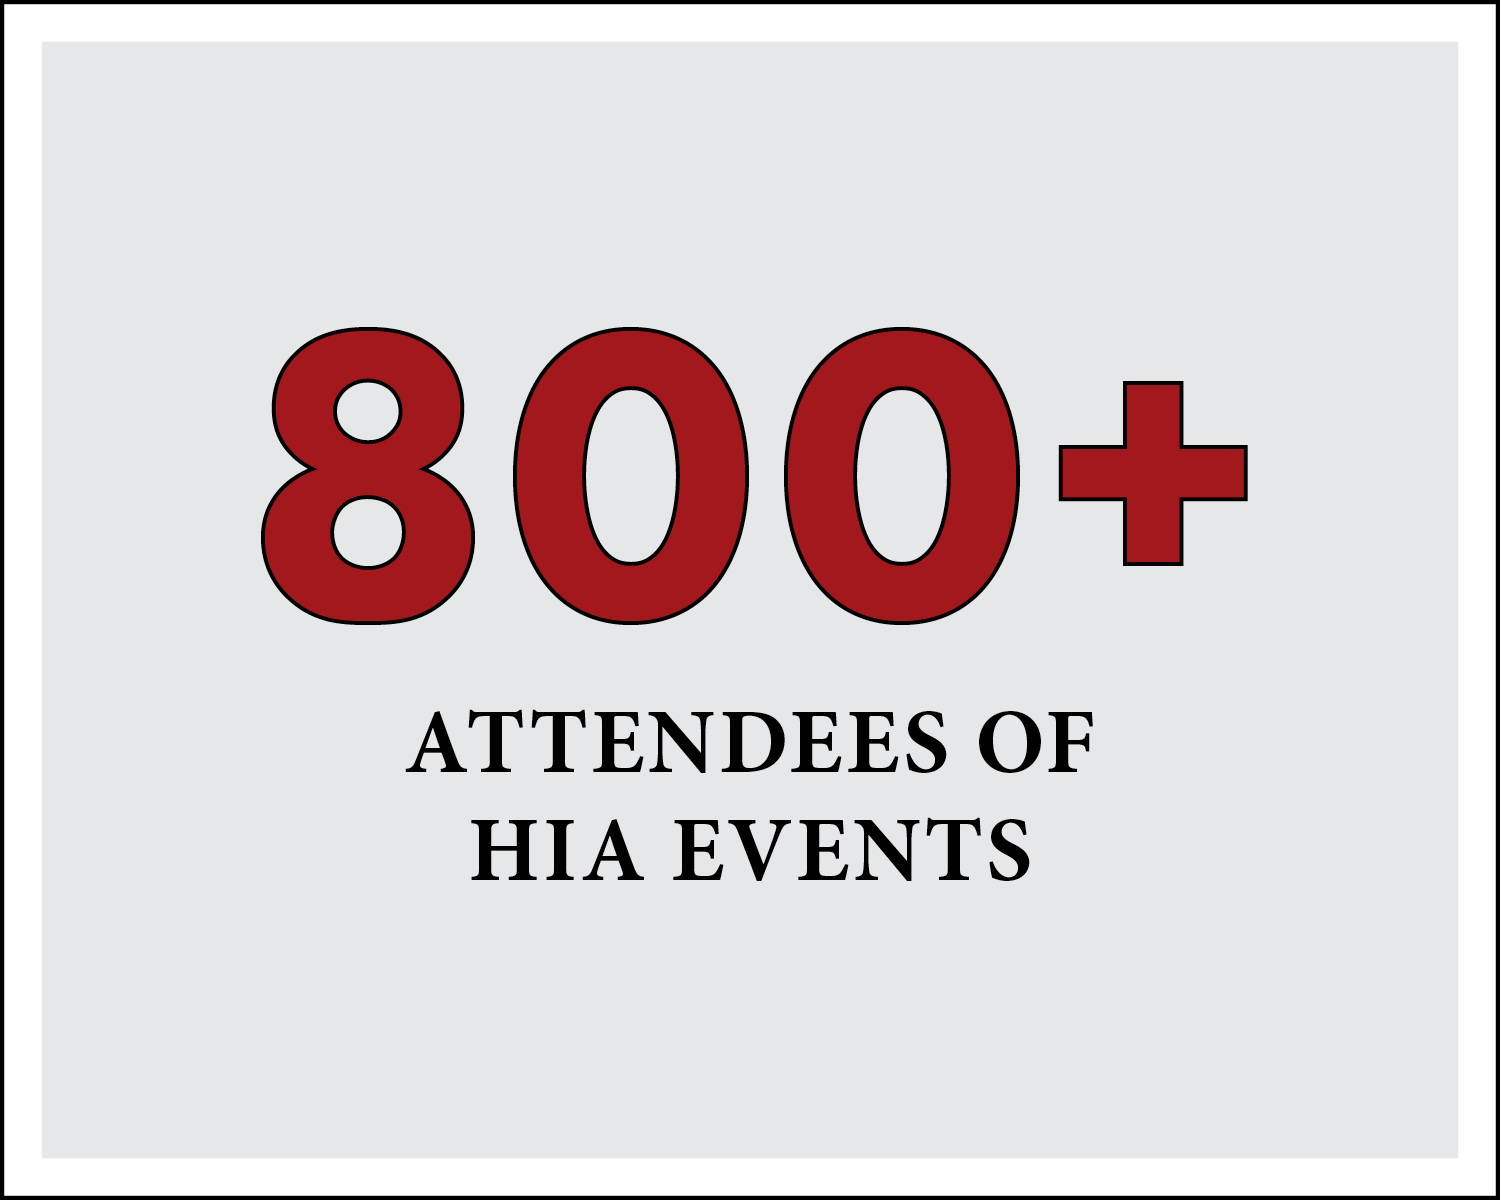 - Most HIA events are open to the broader community, and we welcome all who are interested in sharing and learning more about Iran, Iranians, and Iranian culture.